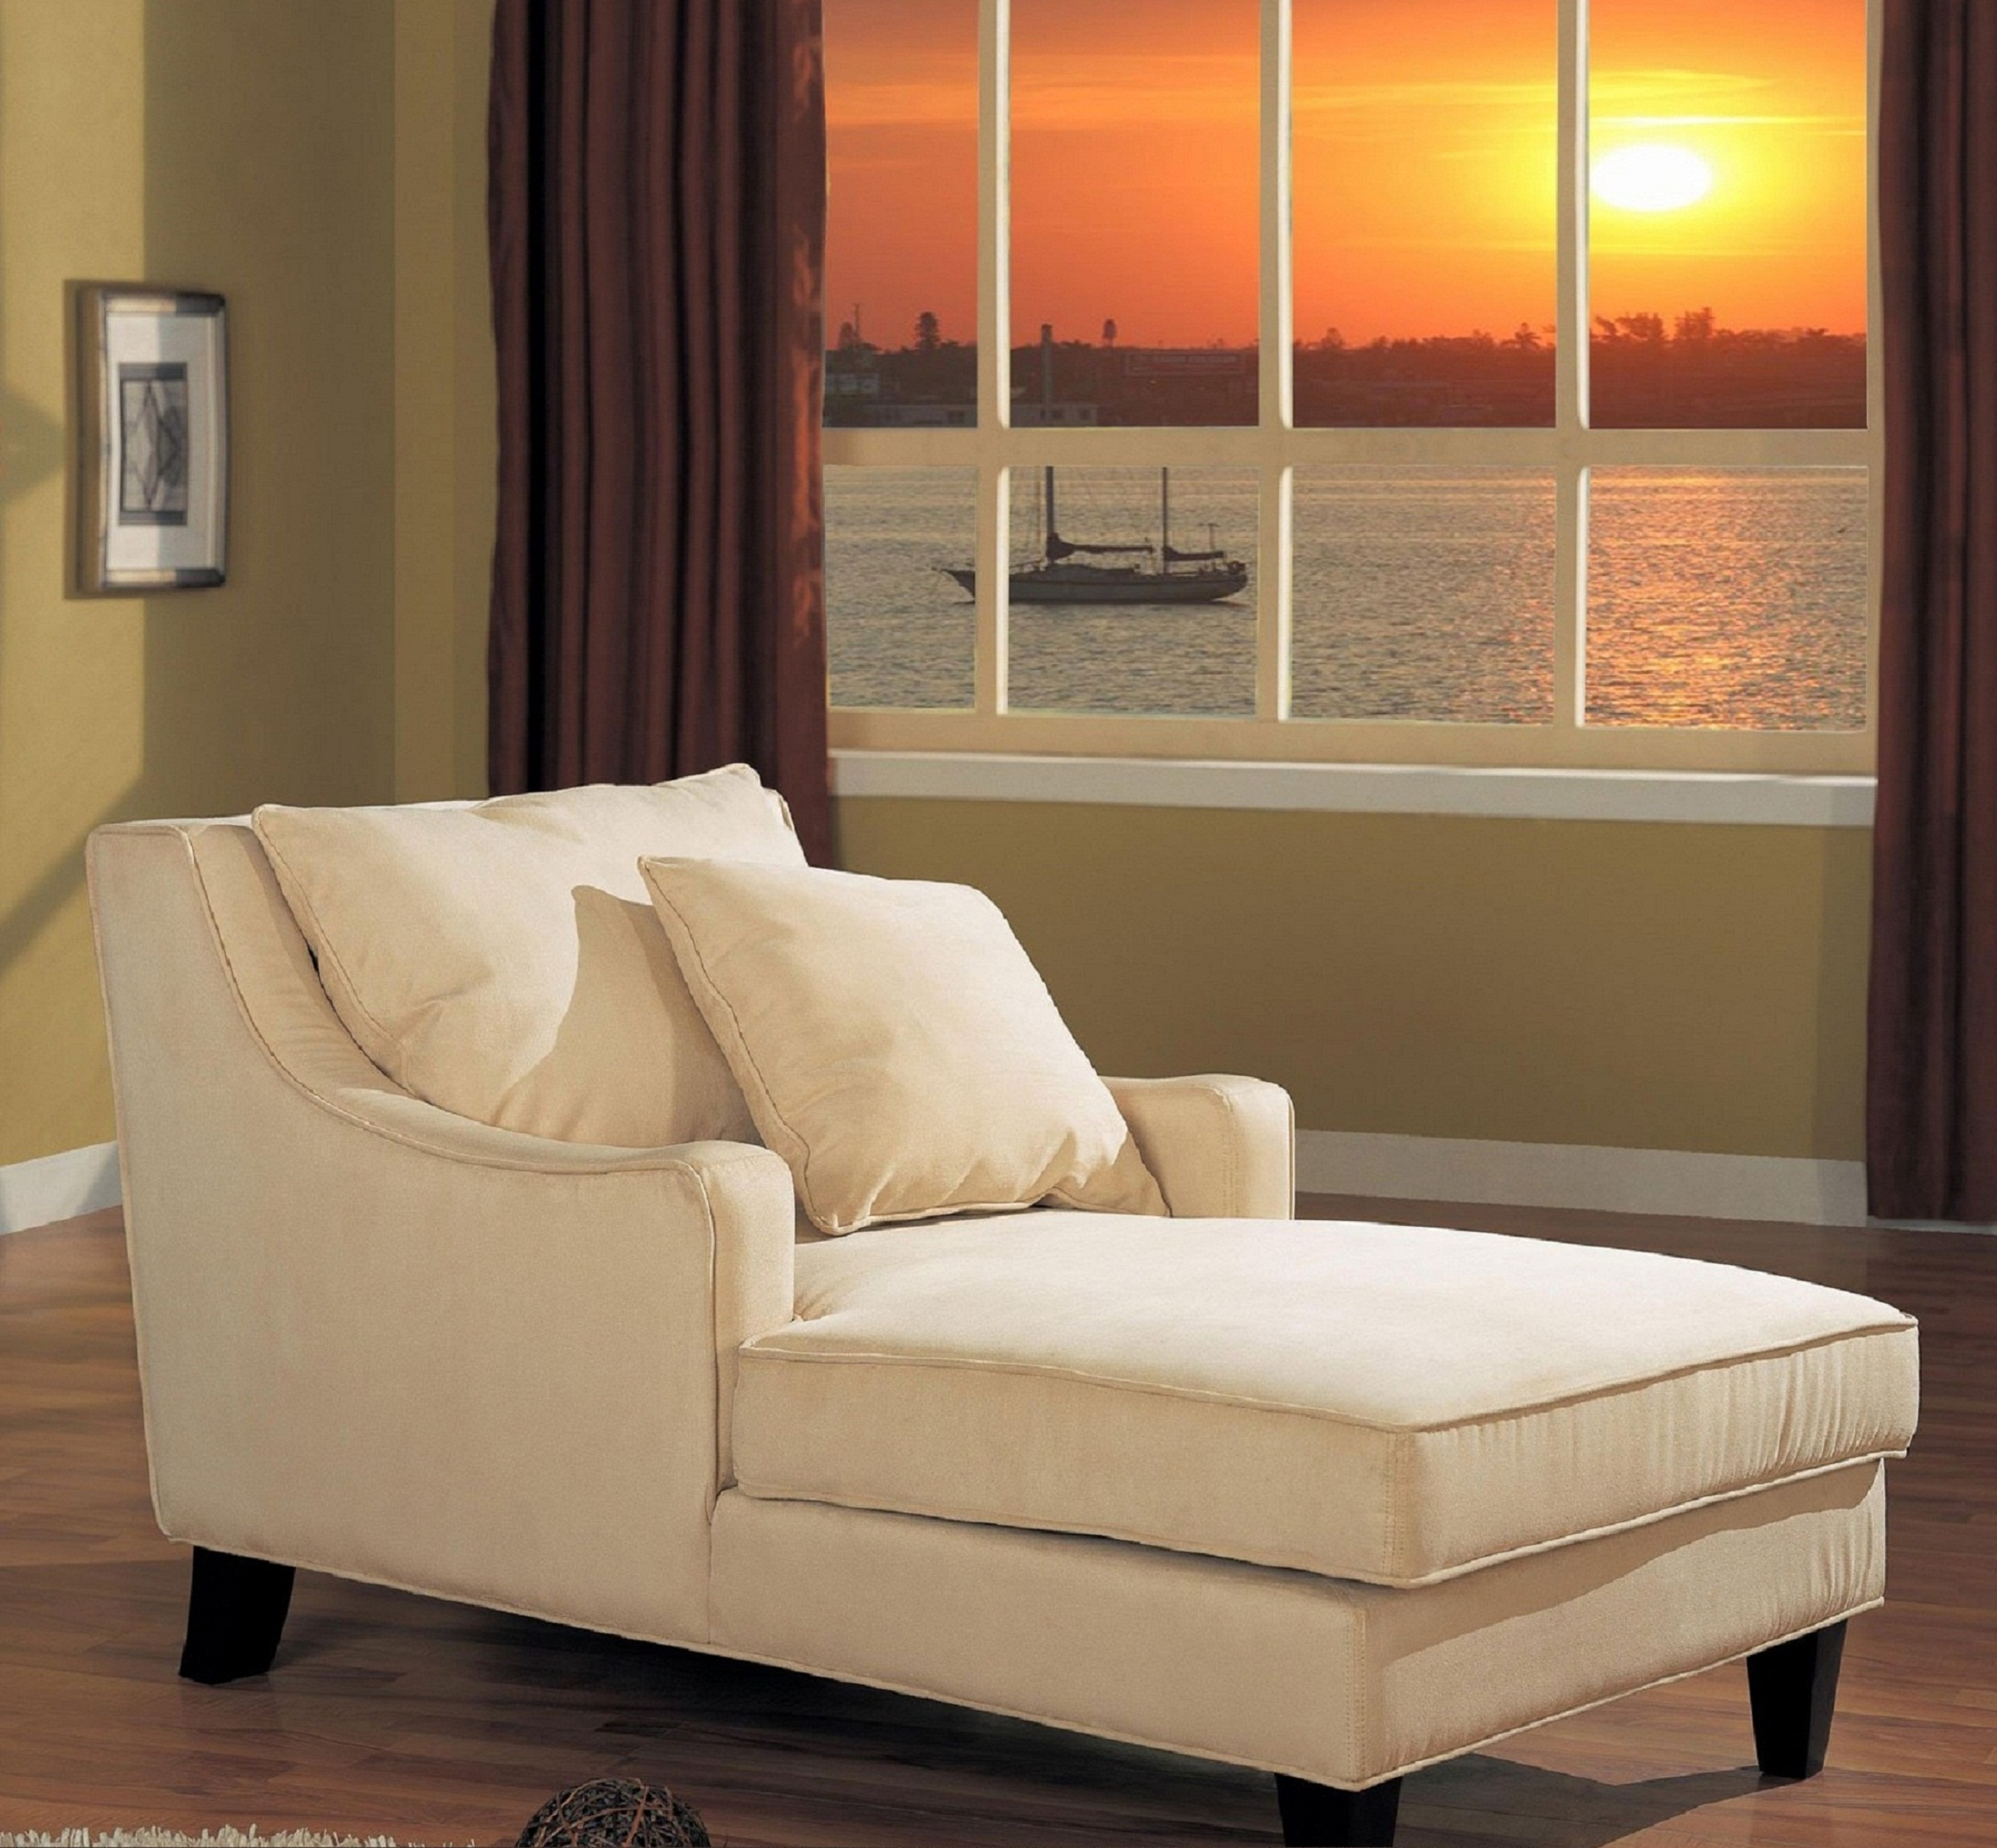 Upholstered Chaise Lounge Chairs throughout Well known Wide Beige Upholstered Chaise Lounge With Arm And Cushion Having